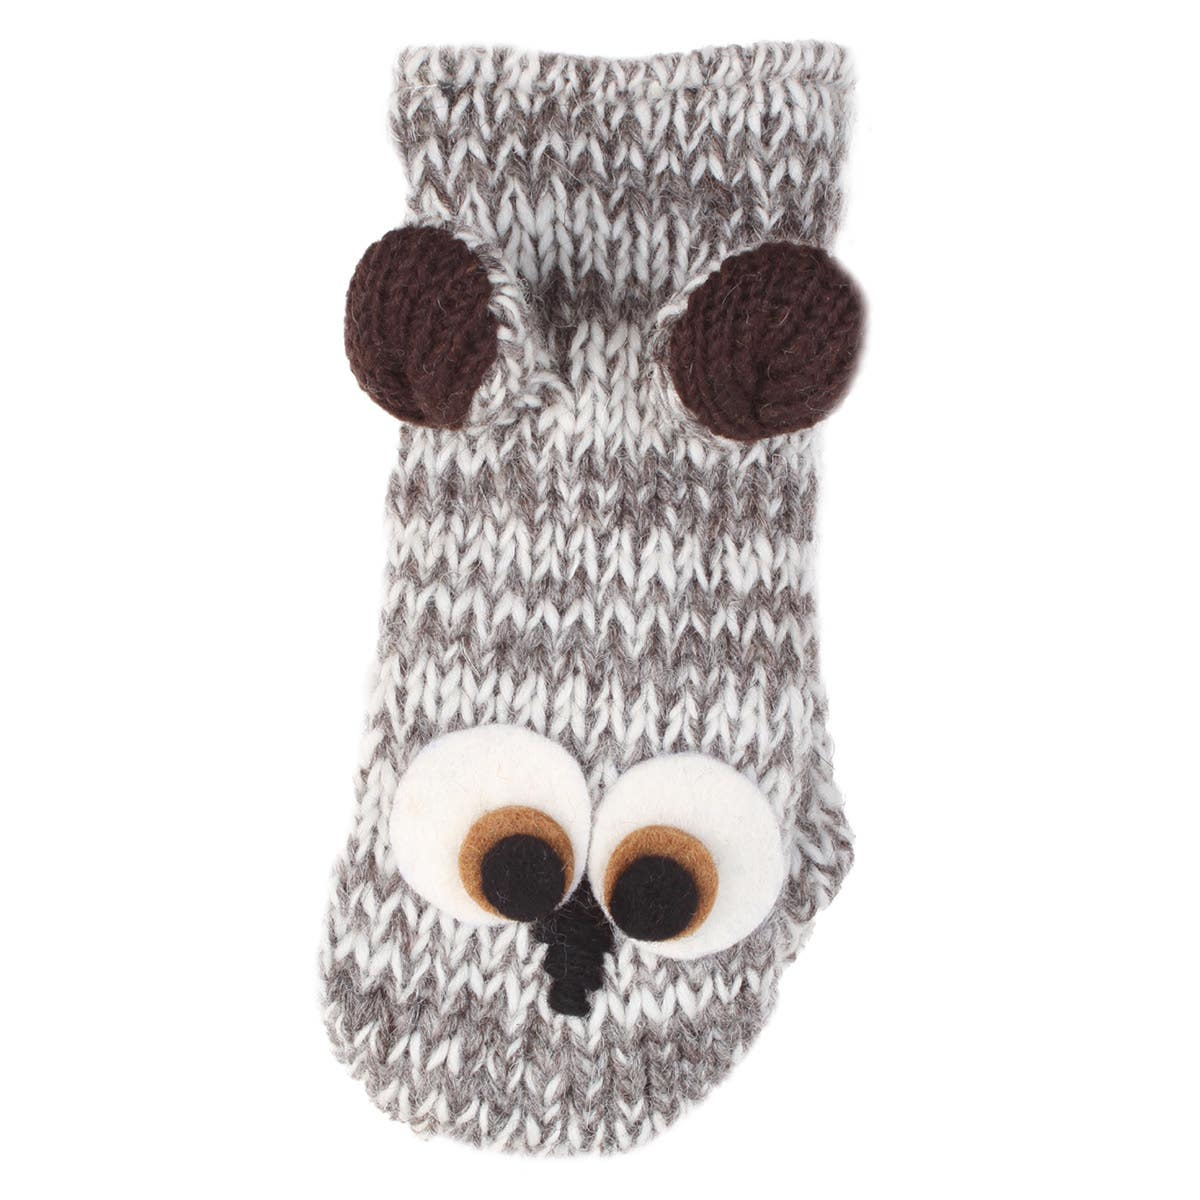 Kids' 100% Wool Fleece Lined Owl Mittens